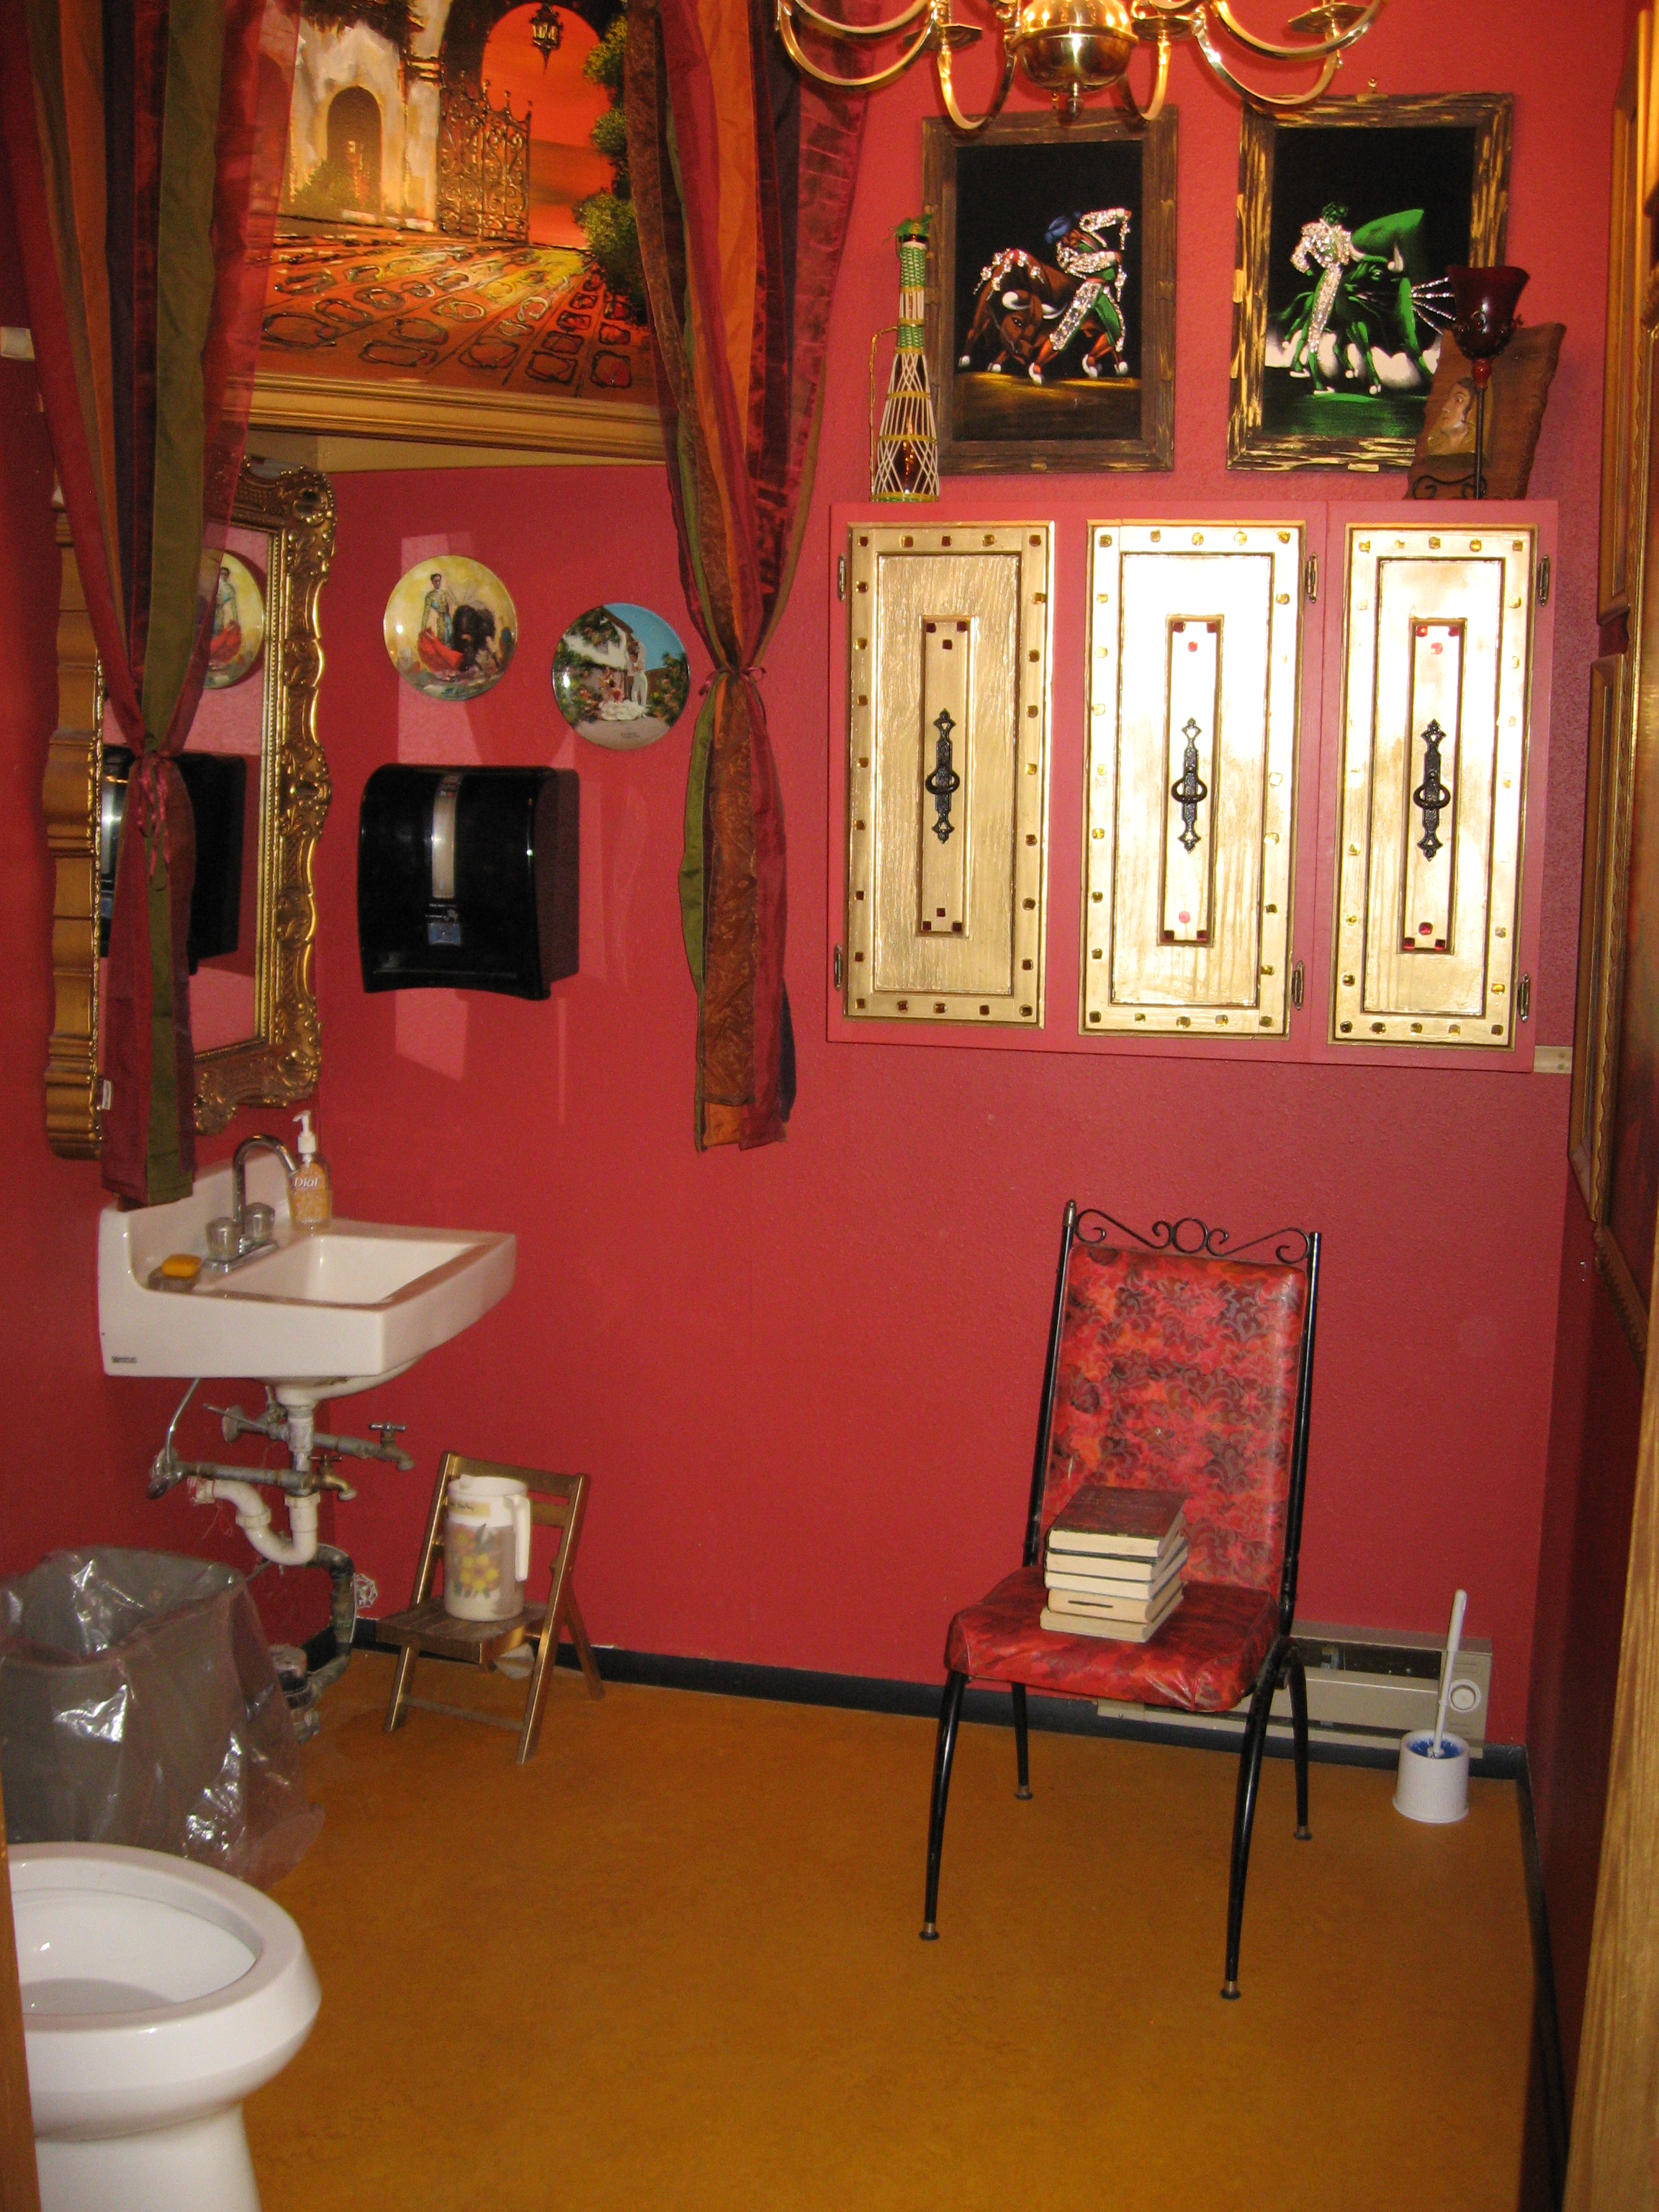 Found this amazing washroom in a thrift store when we decided to get off the interstate highway and check out Livingston Montana. Also got some great books at the thrift store.